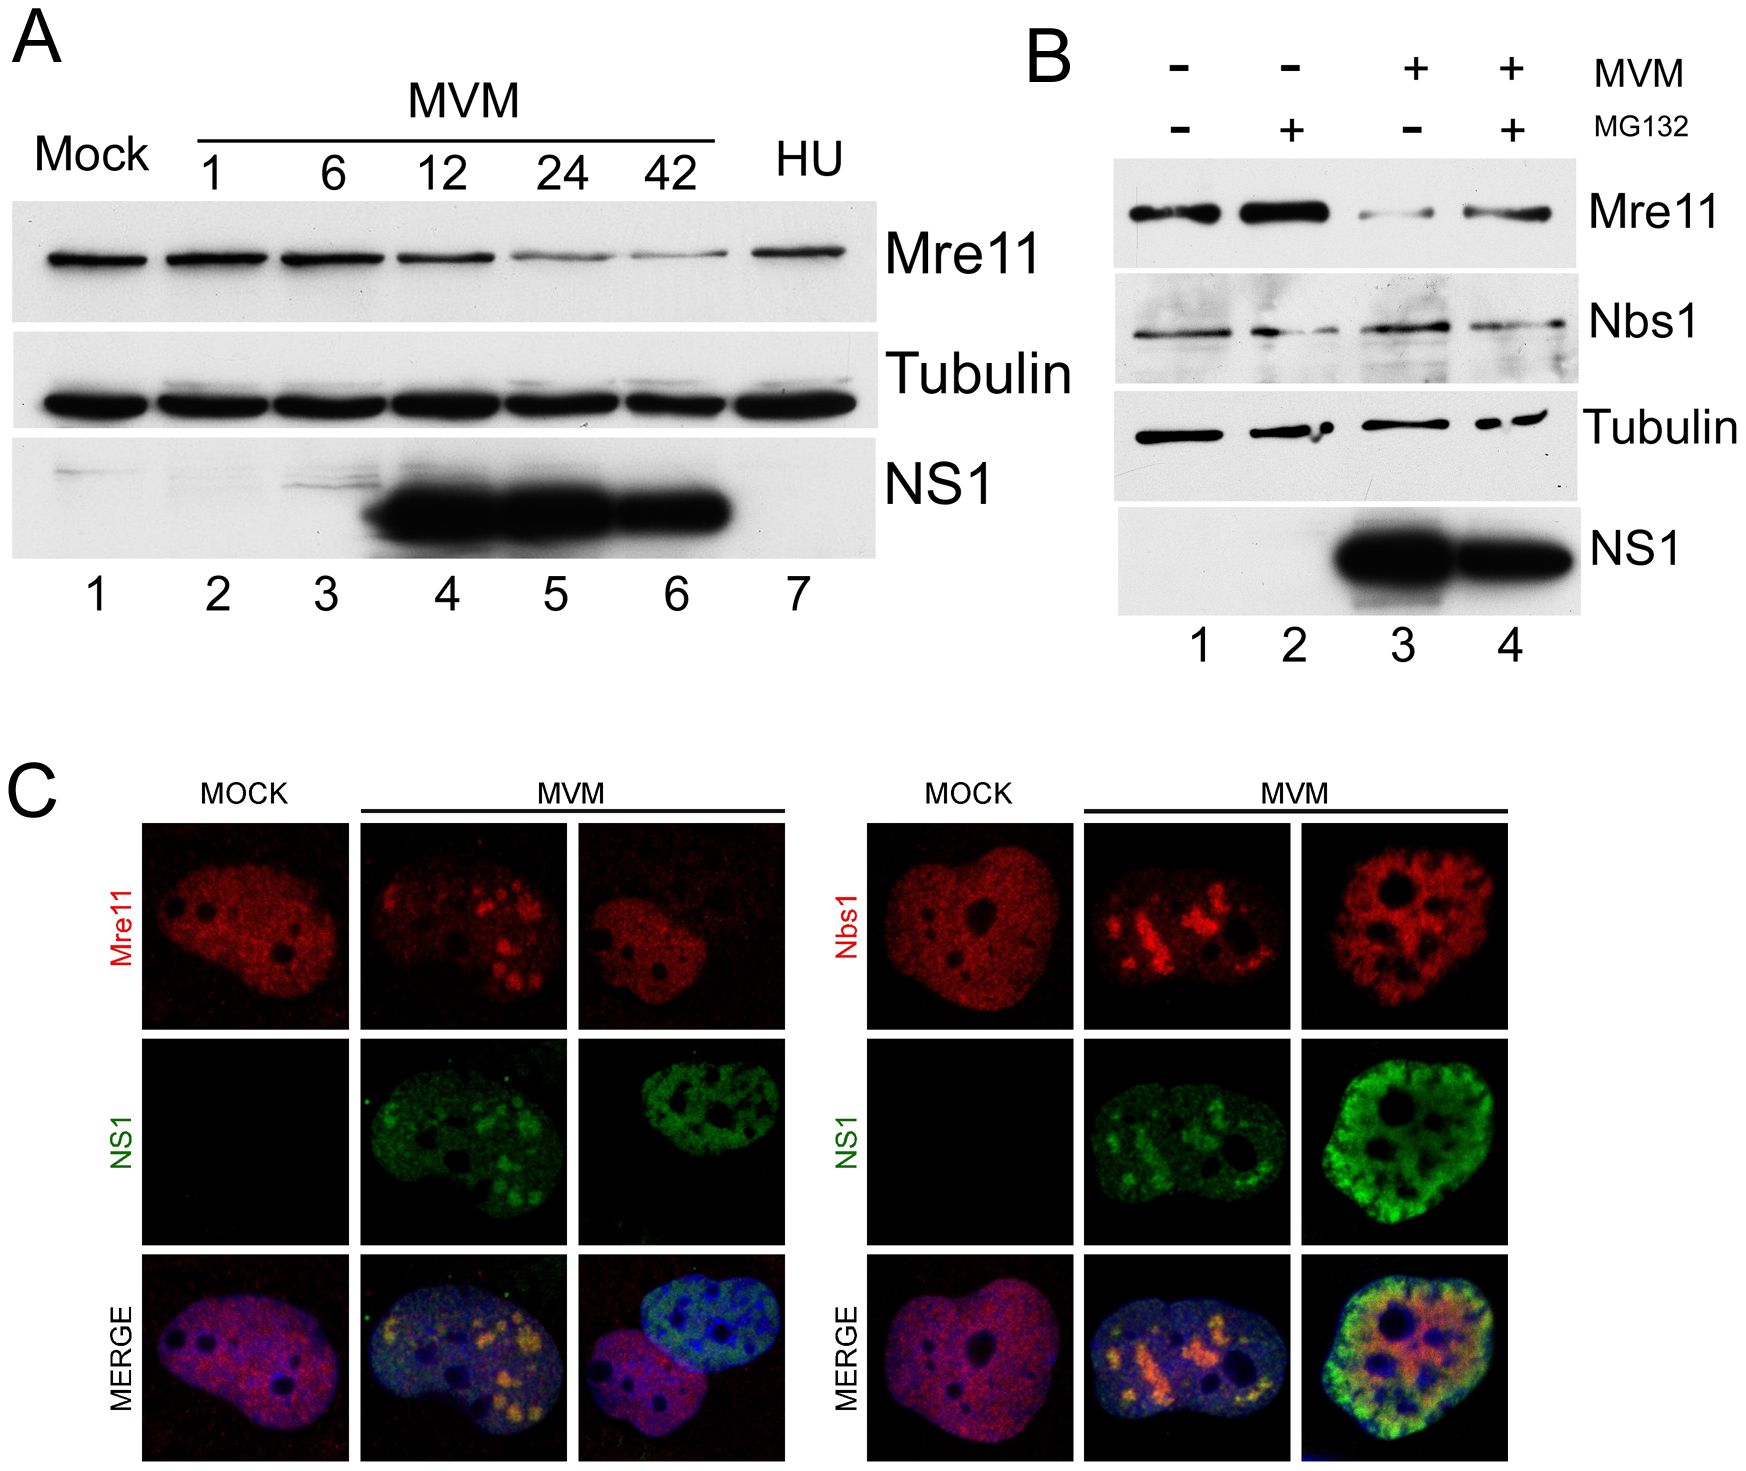 Mre11 but not Nbs1 is degraded in MVM-infected cells.